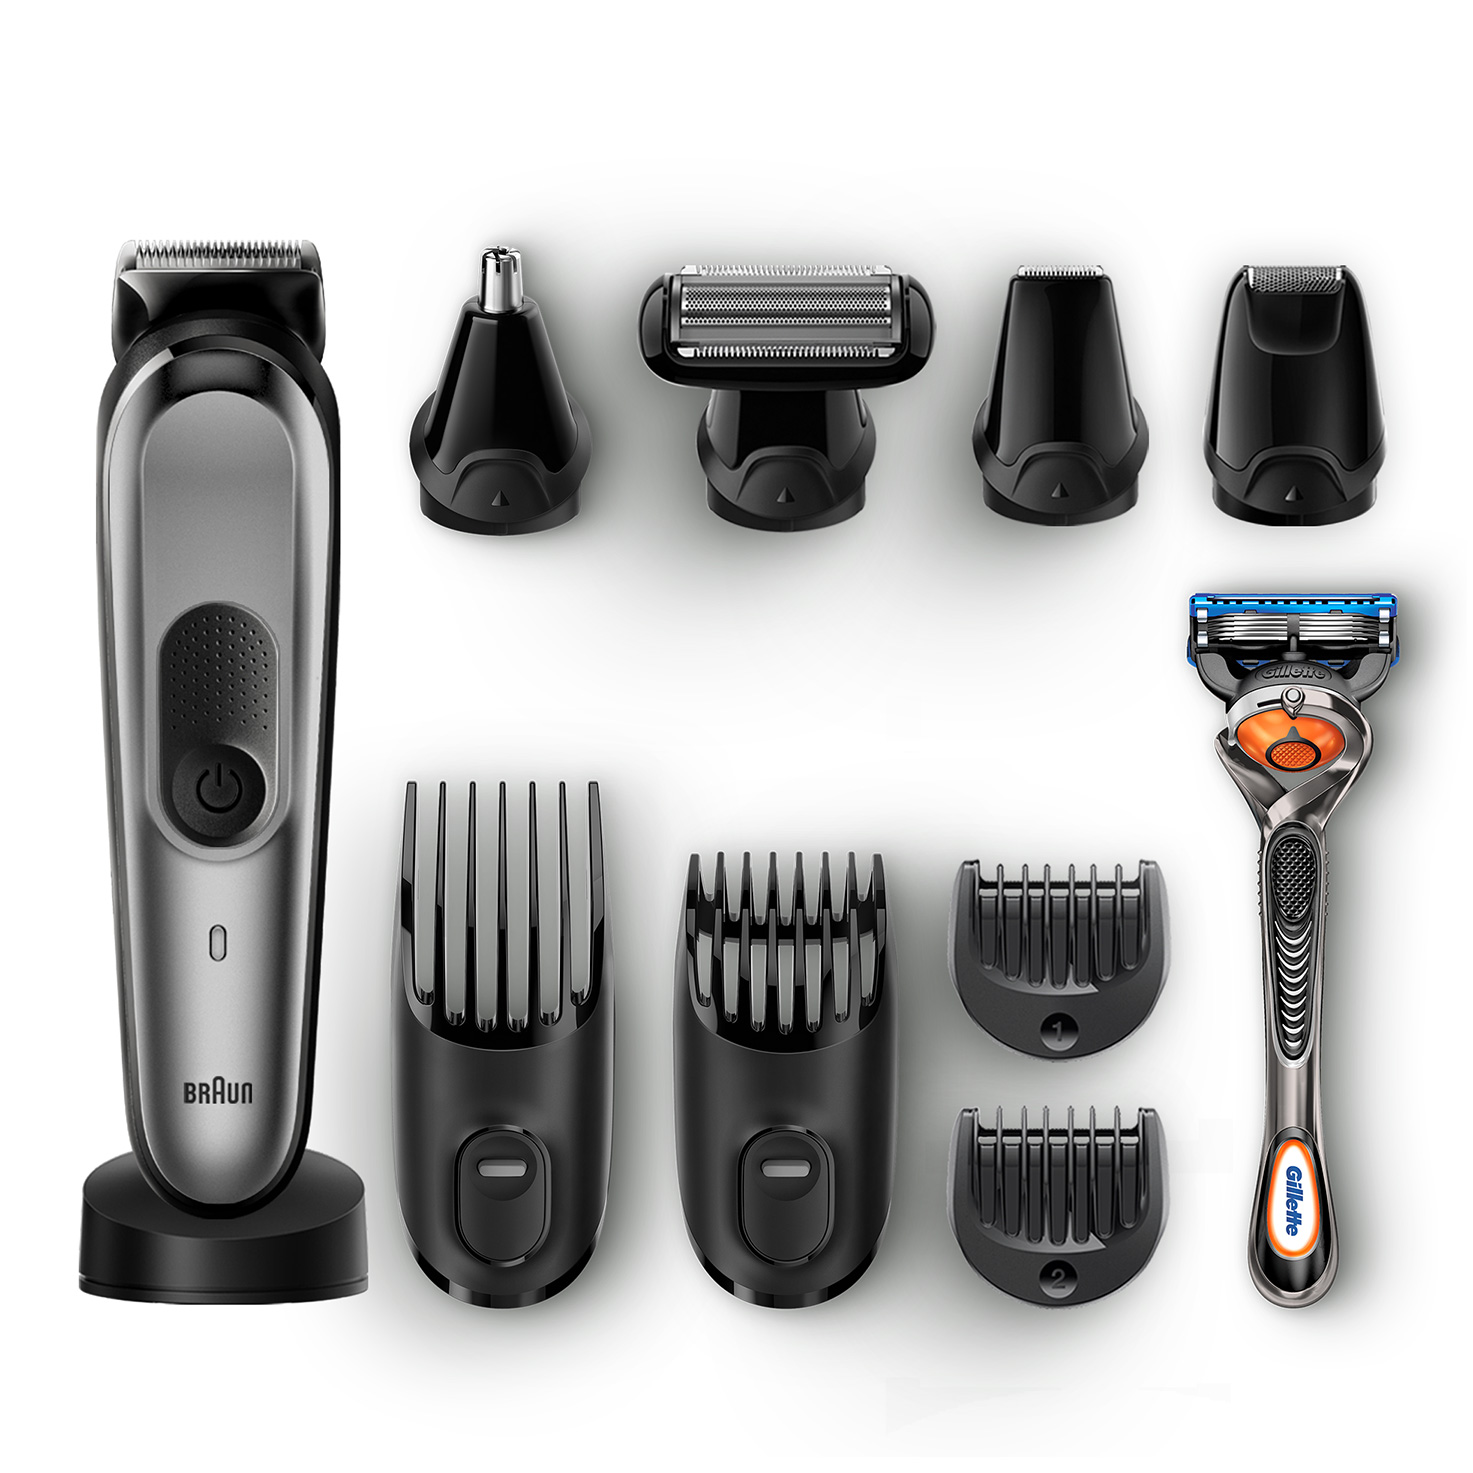 Braun All-in-one trimmer MGK7020 - What´s in the box